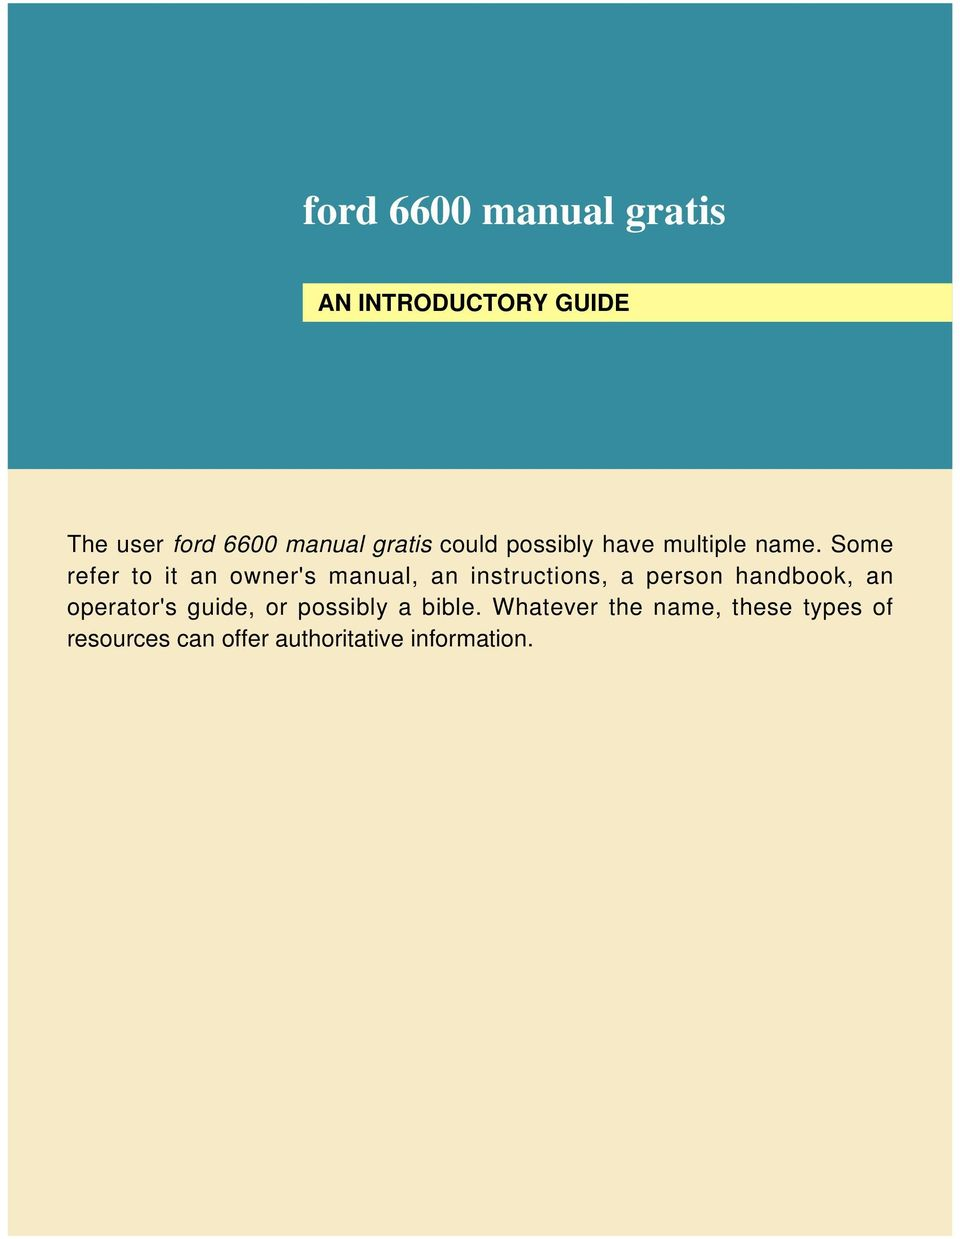 Ford 6600 manual gratis pdf some refer to it an owners manual an instructions a person handbook an fandeluxe Image collections